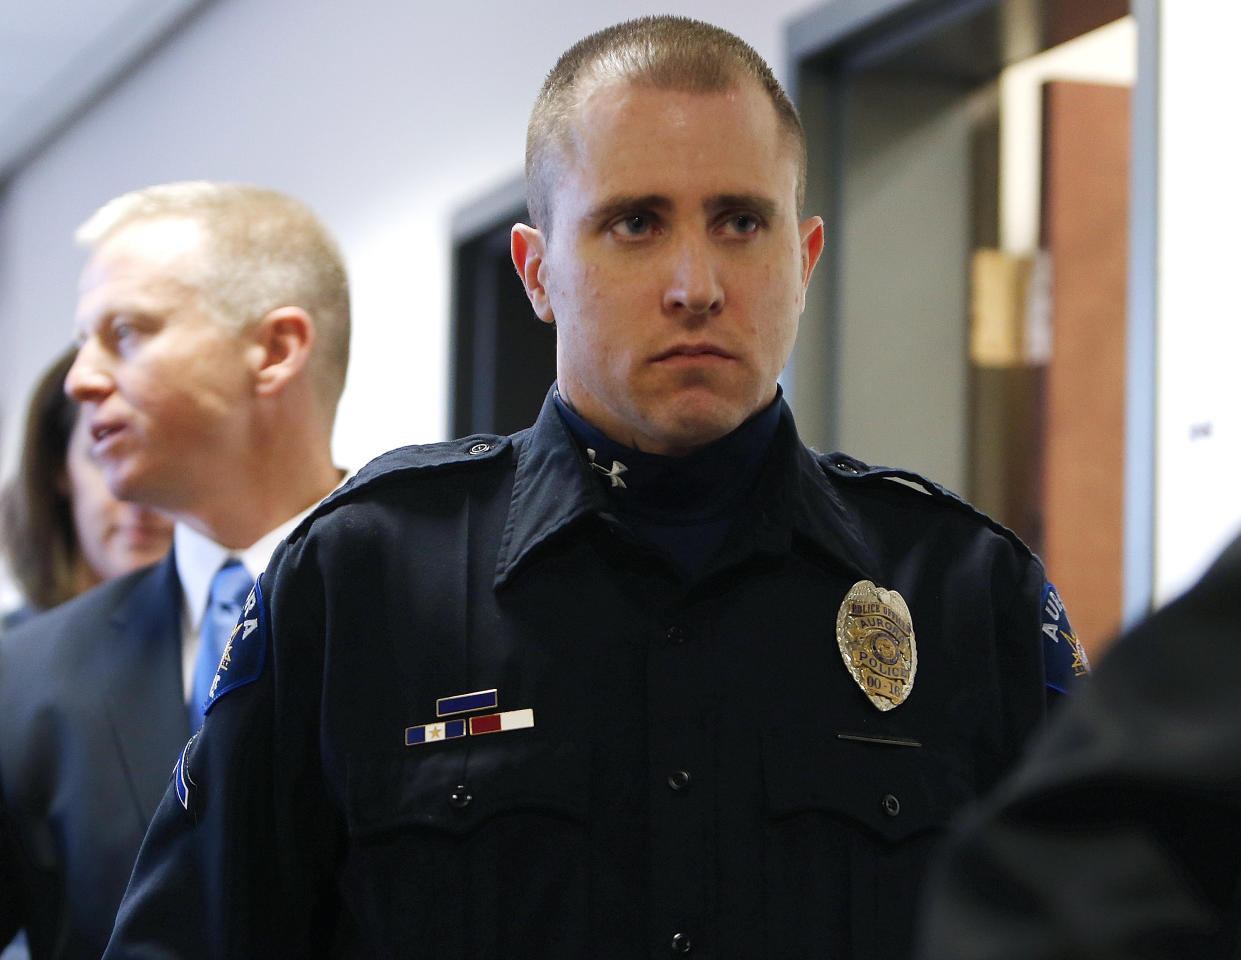 Aurora Police Officer Justin Grizzle leaves court after testifying at a preliminary hearing for James Holmes at the courthouse in Centennial, Colo., on Monday, Jan. 7, 2013. Investigators say Holmes opened fire during the midnight showing of the latest Batman movie on July 20, killing 12 people and wounding dozens. Grizzle fought to keep his composure during his testimony, in which he described people running from the theater, wounded people trying to crawl from the theater, and people uninjured helping those who had been injured. (AP Photo/Ed Andrieski)